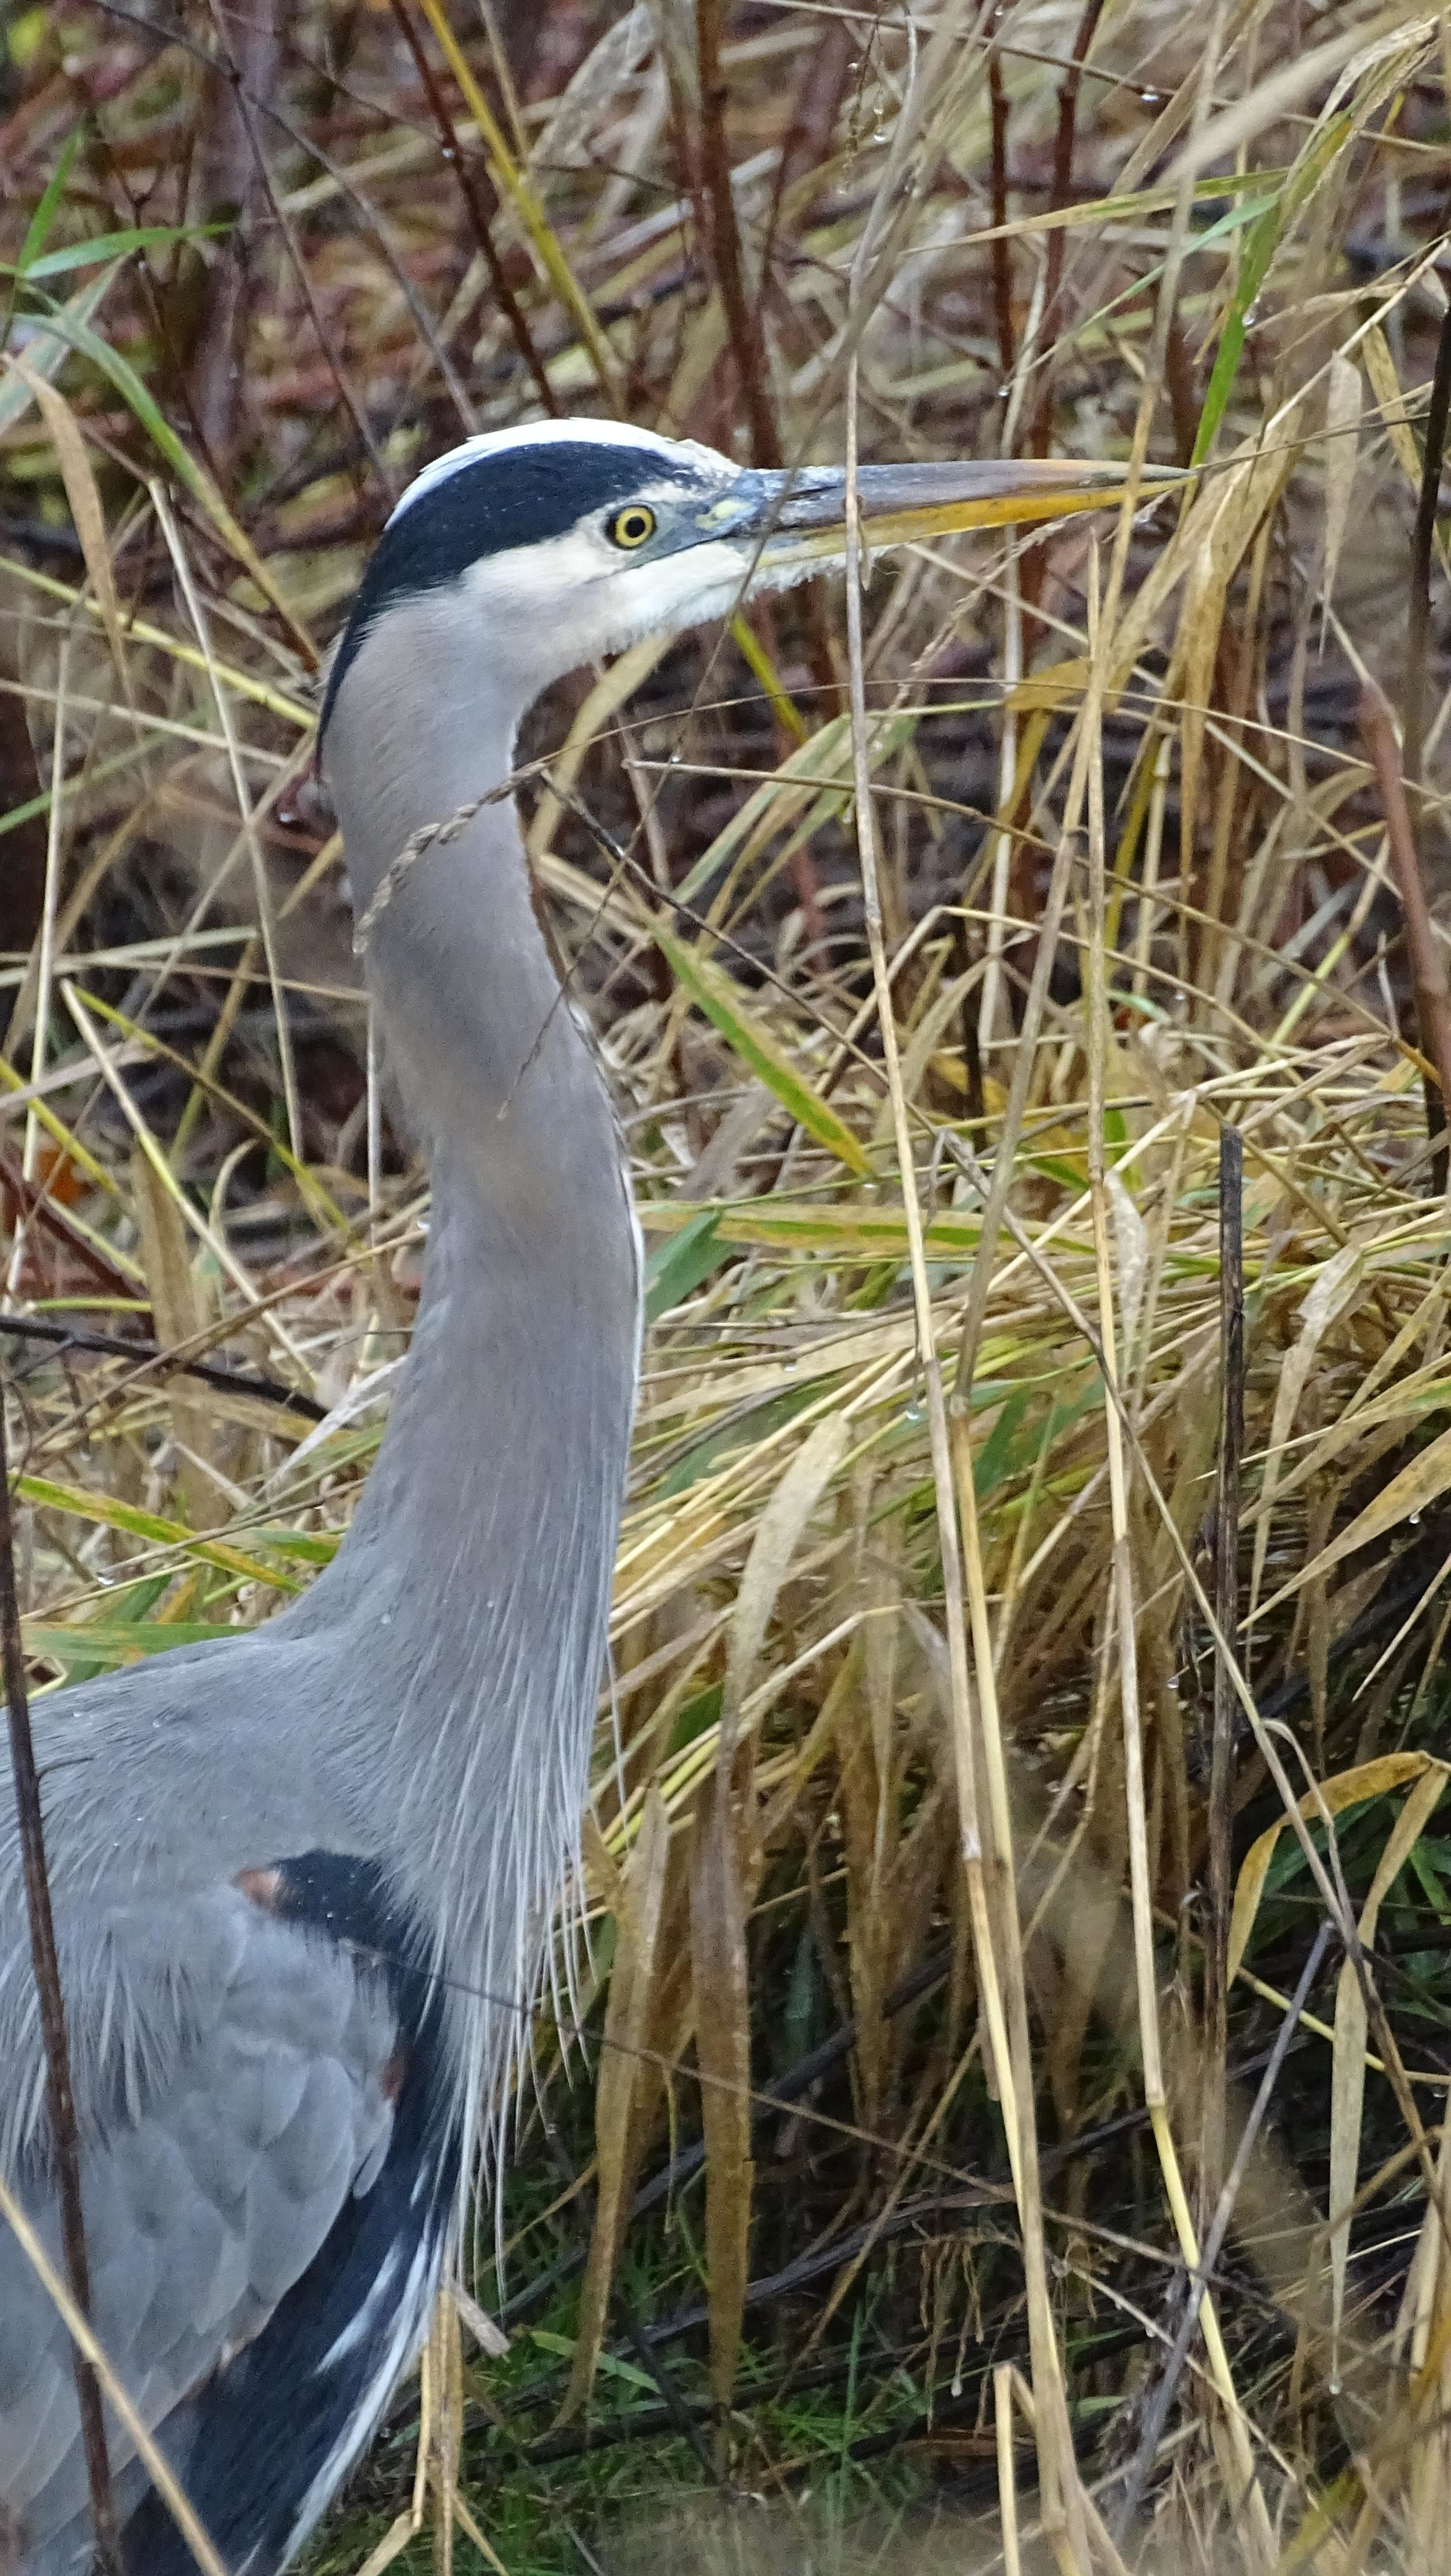 A Great Blue Heron at Billy Frank Jr. Nisqually National Wildlife Refuge.